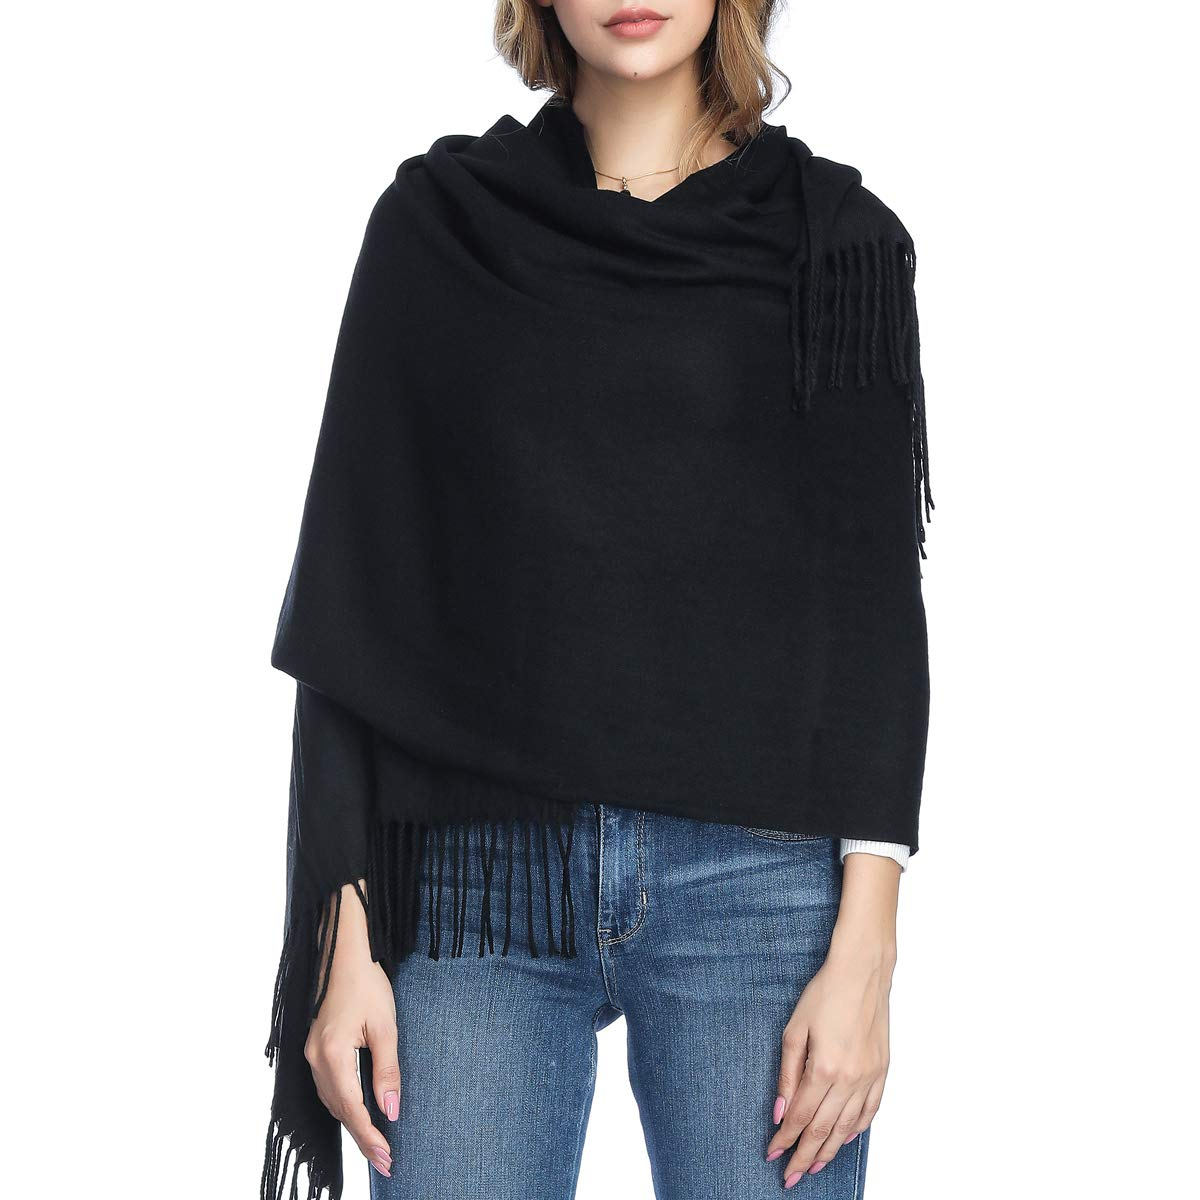 Extra Large Thick Soft Cashmere Wool Shawl Wraps for Women - PoilTreeWing Pashmina Scarf(Black) by PoilTreeWing